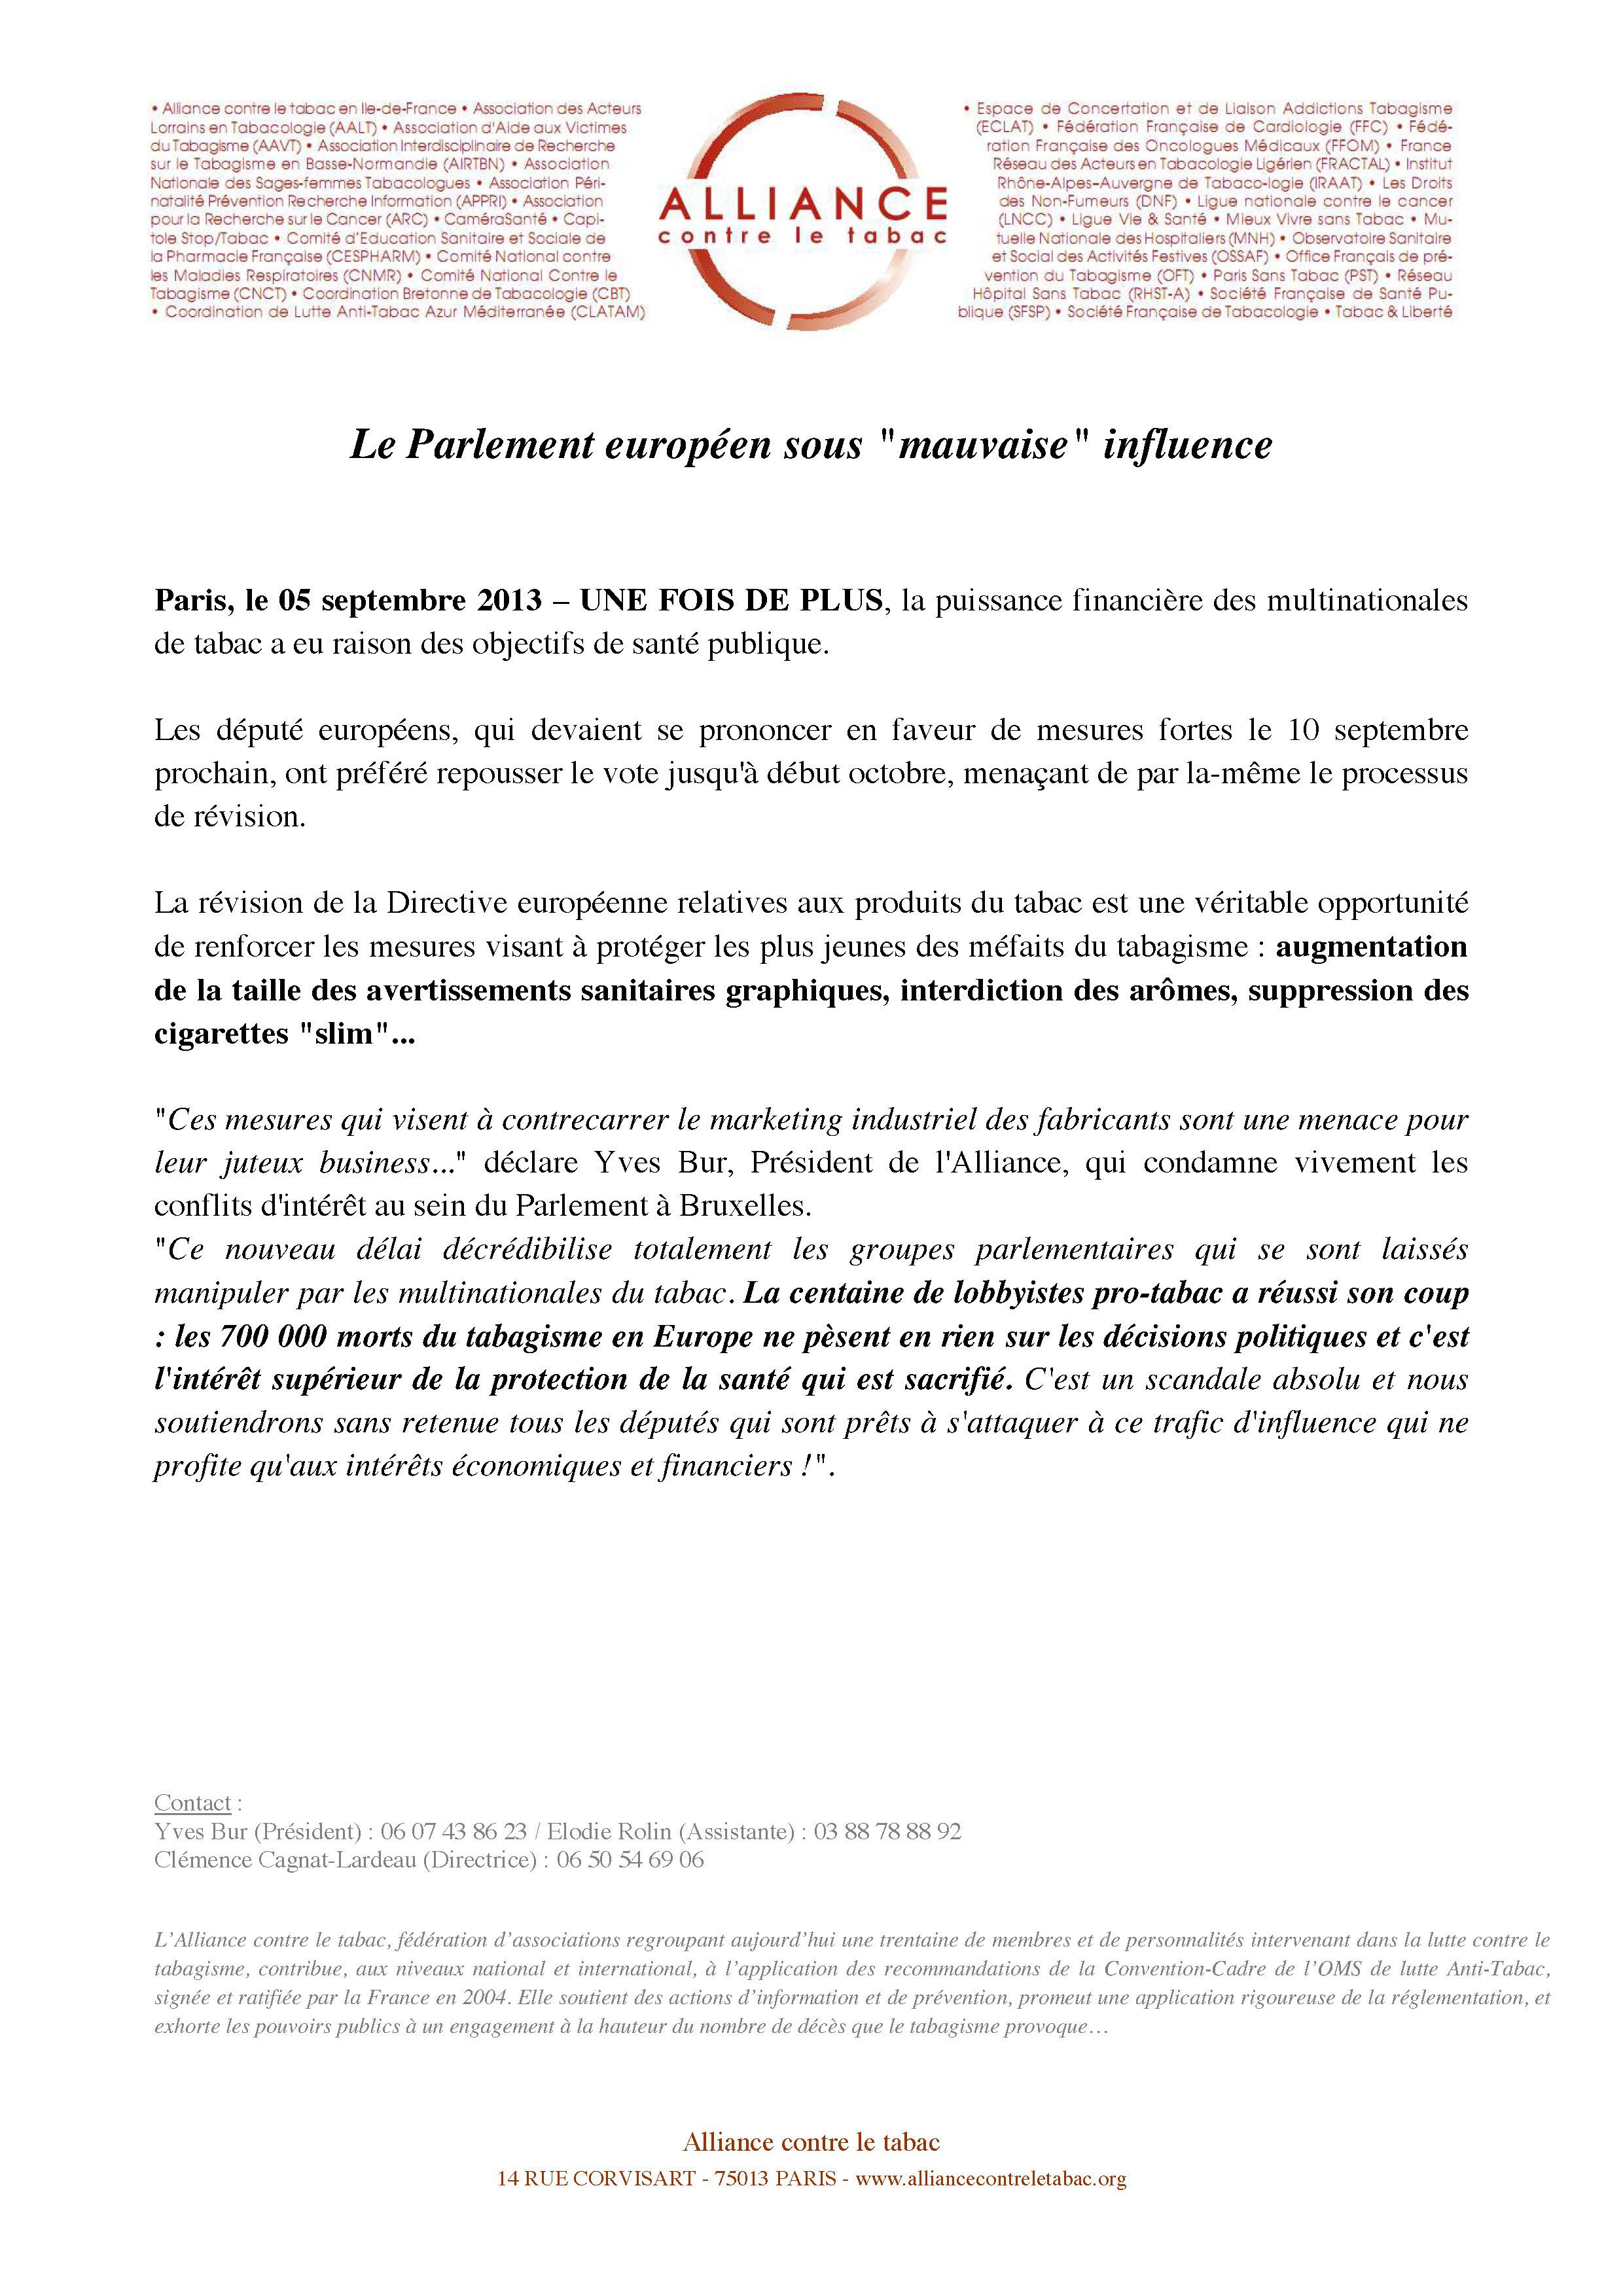 Alliance-CP_le-parlement-europeen-sous-mauvaise-influence-05sept2013.jpg